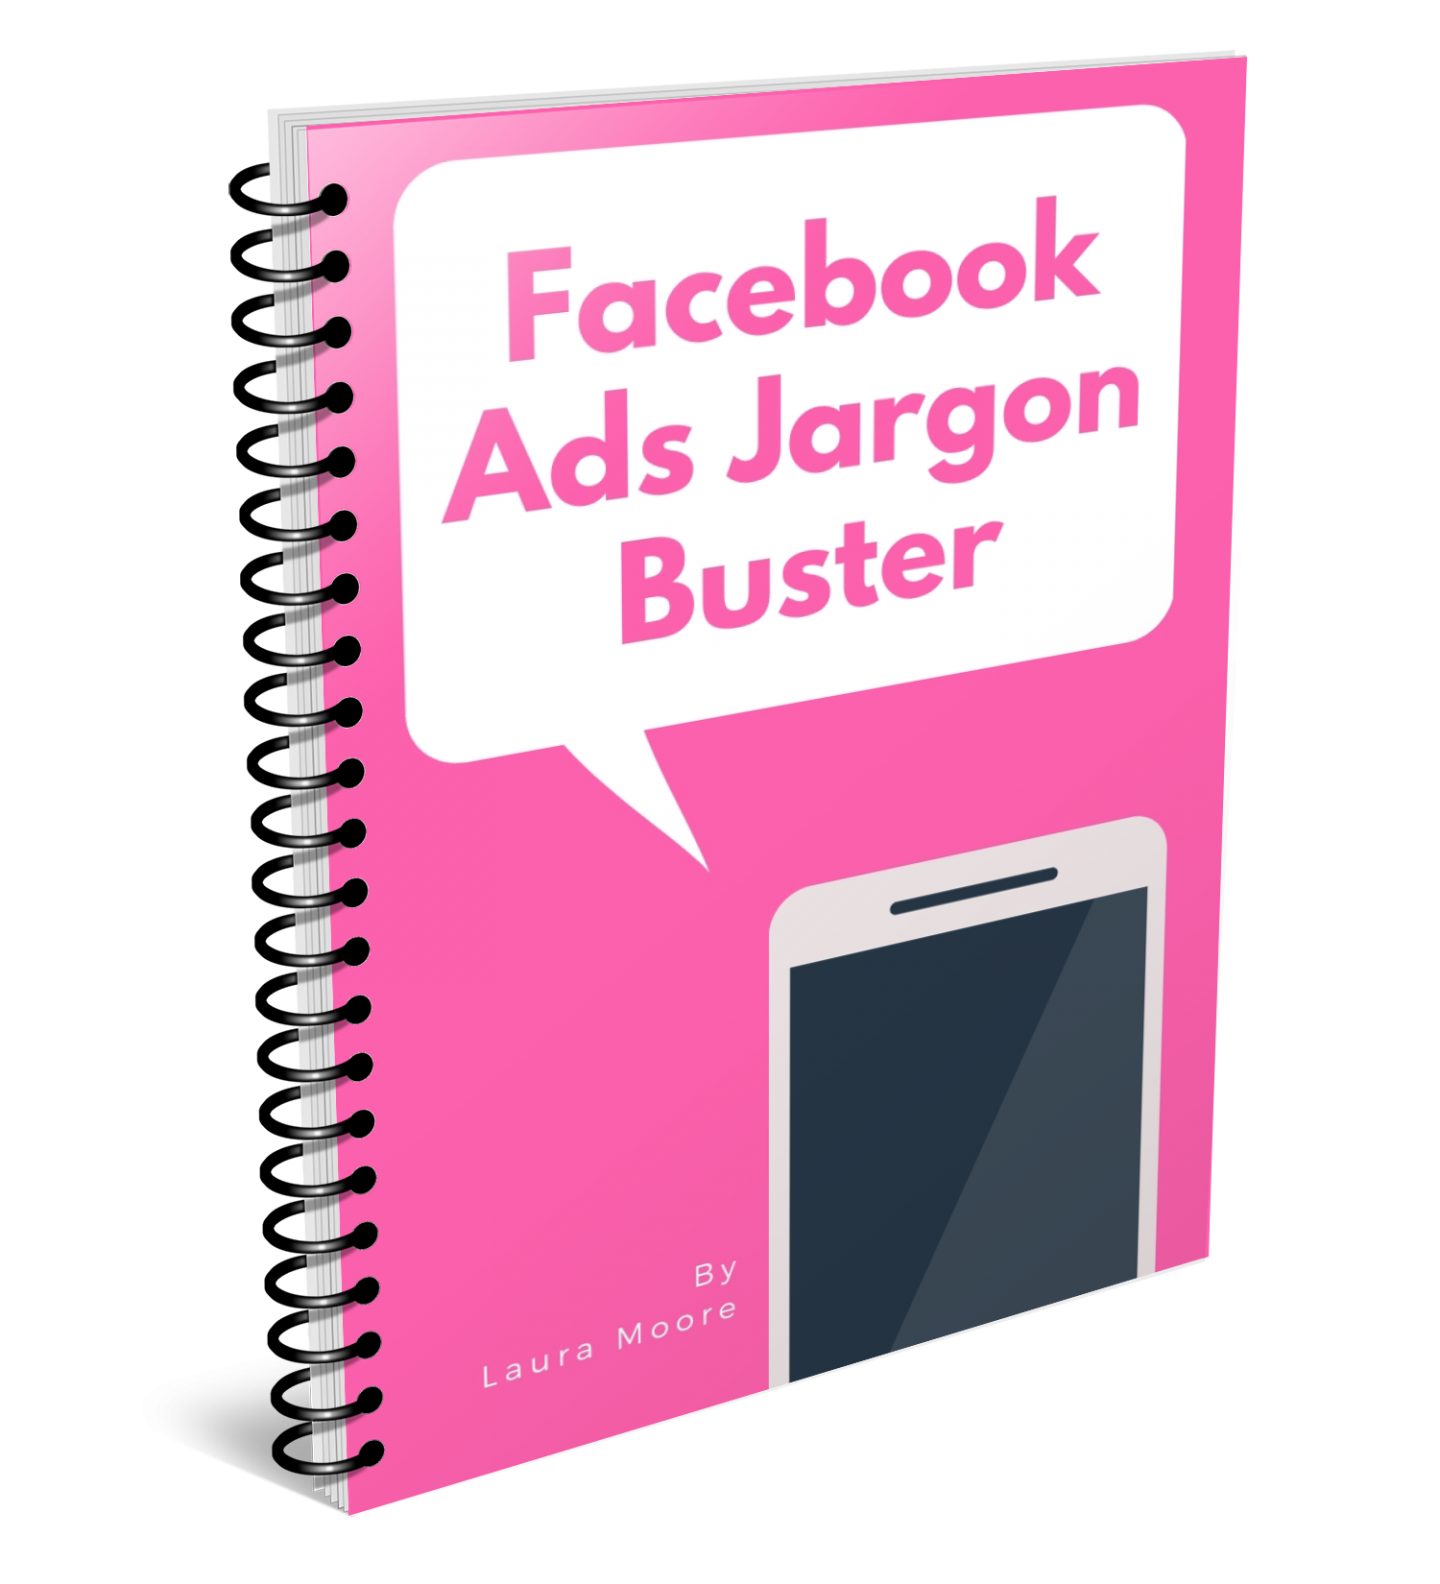 a-z guide to facebook ads jargon